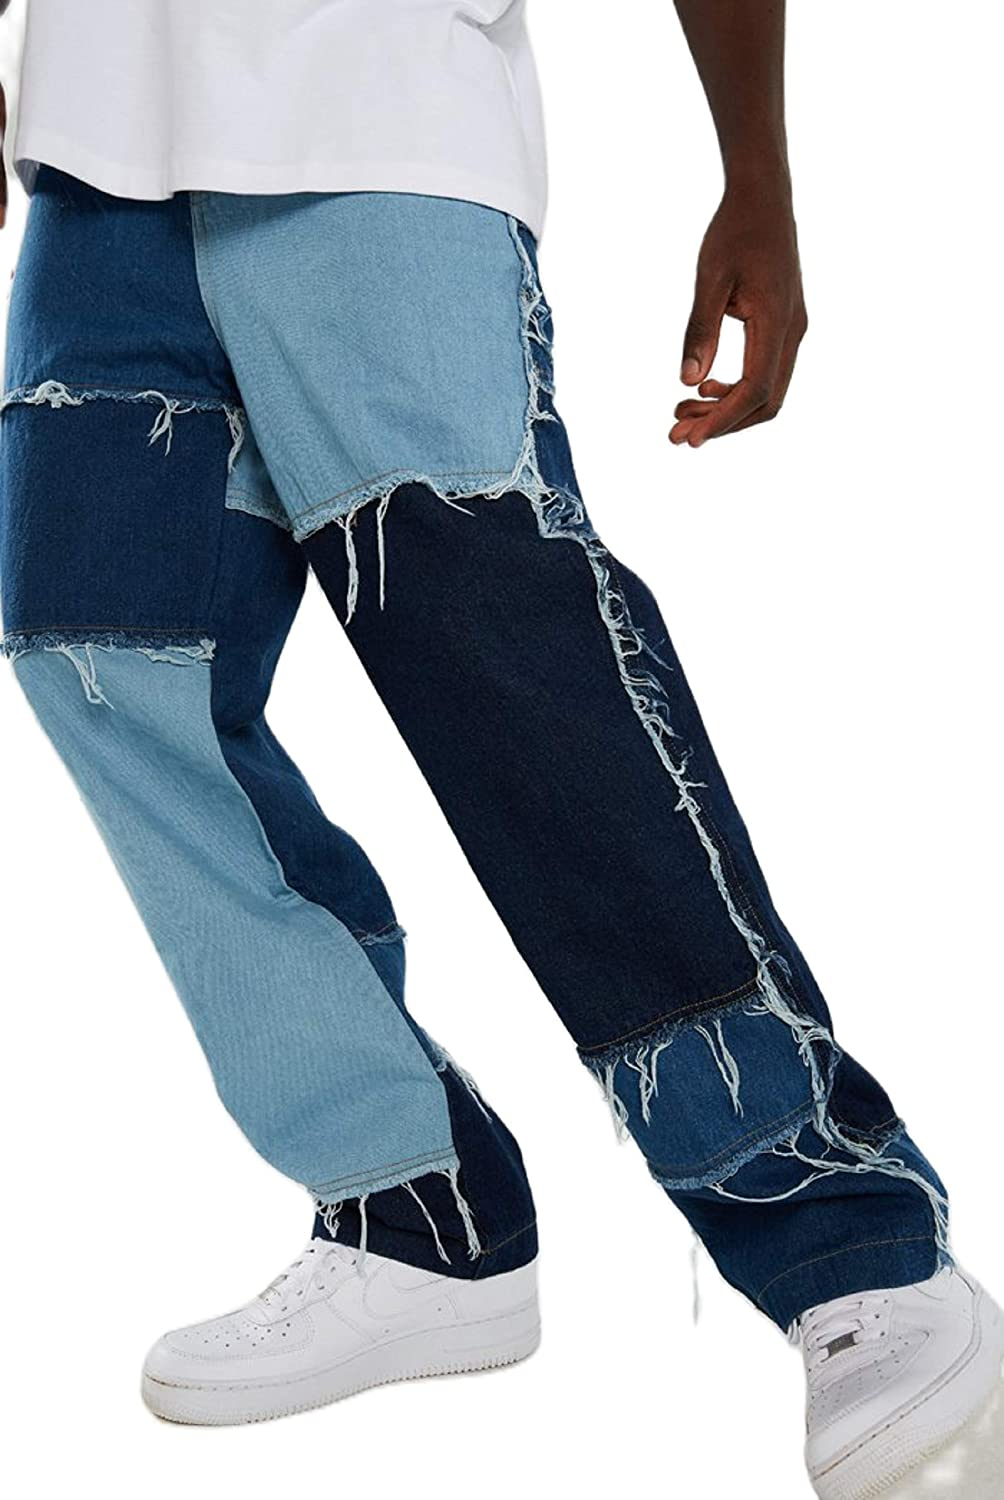 NUFIWI Mens Baggy Jeans Loose Fit Leg Max 44% OFF Denim Soldering Wide Pants Straight